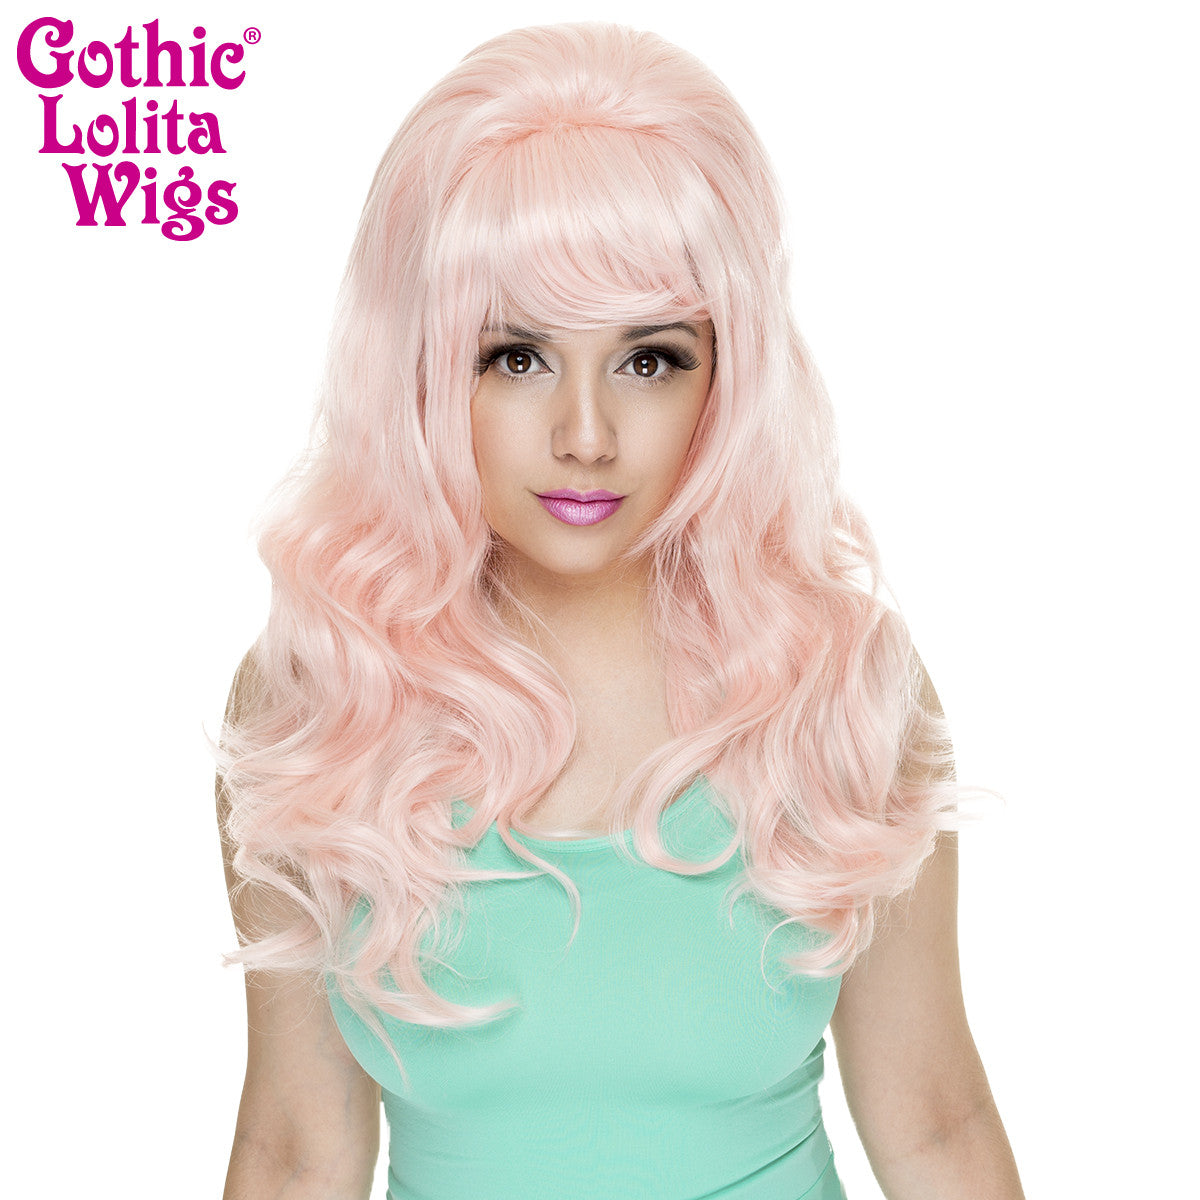 Gothic Lolita Wigs® <br> Princess™ Collection - Pinkie (Pink Blonde) -00512